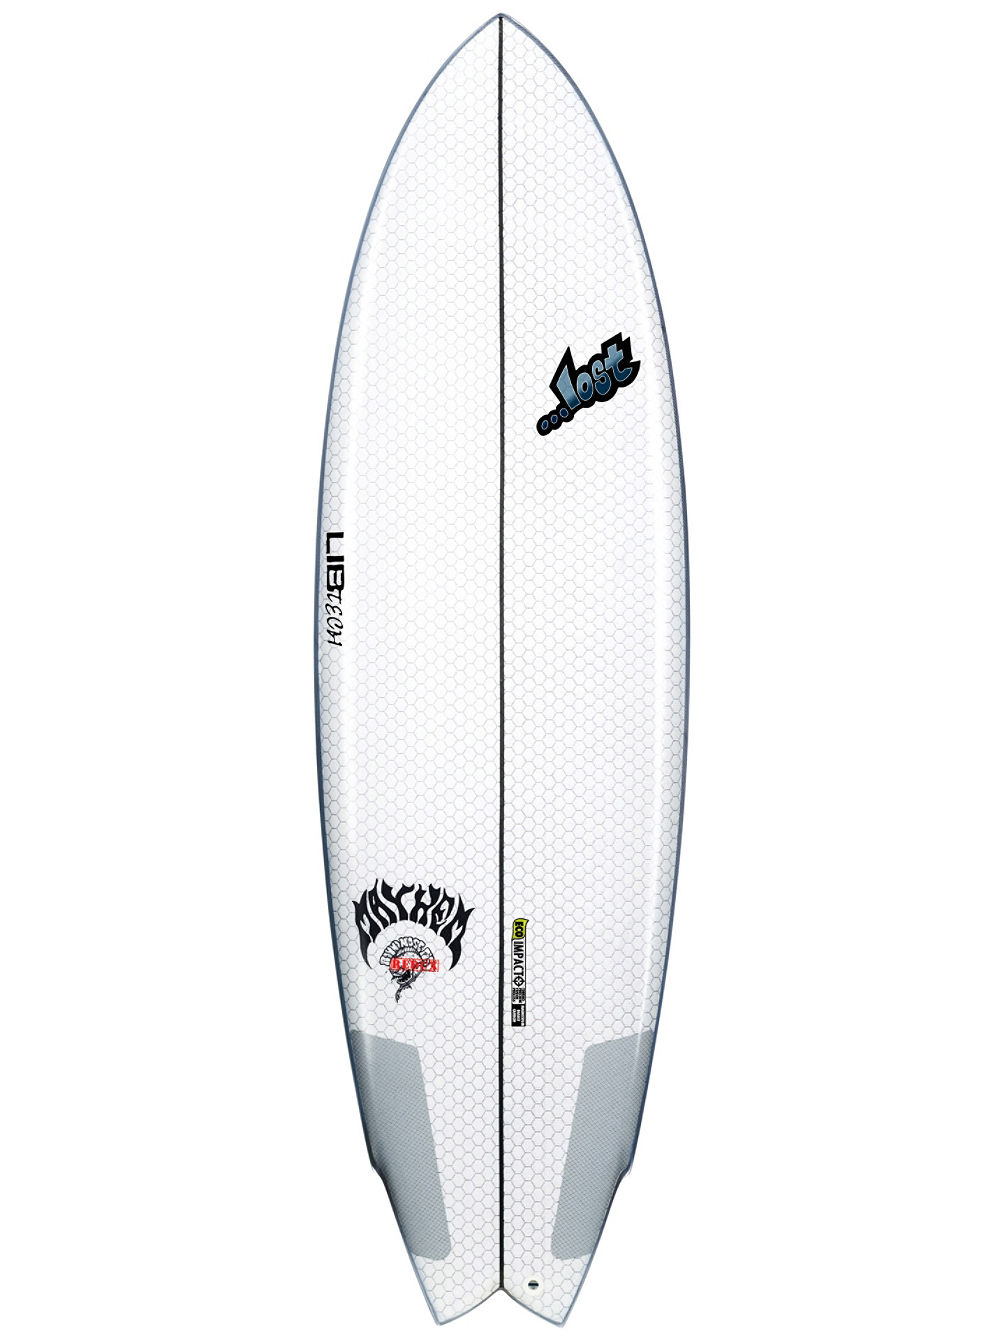 X Lost Round Nose Fish 6'0 Surfboard